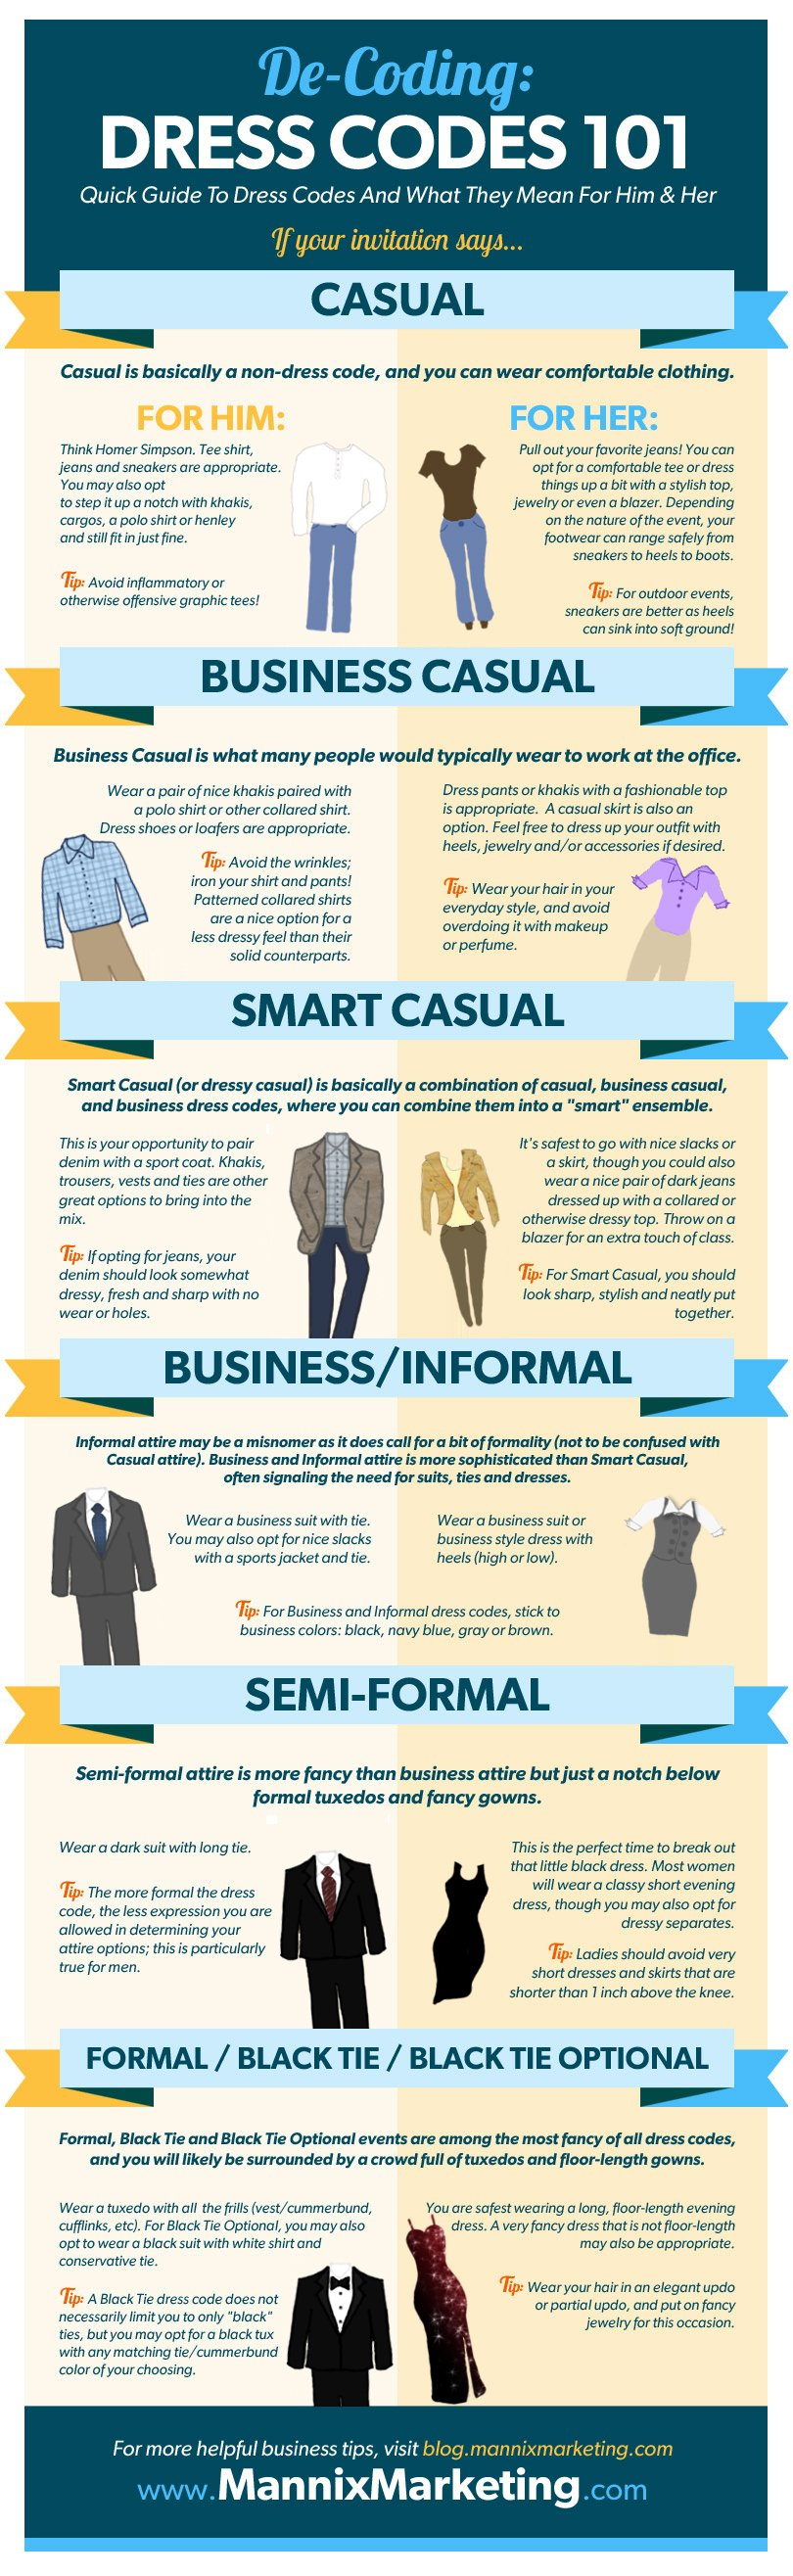 dress codes amp what they mean infographic � his amp her